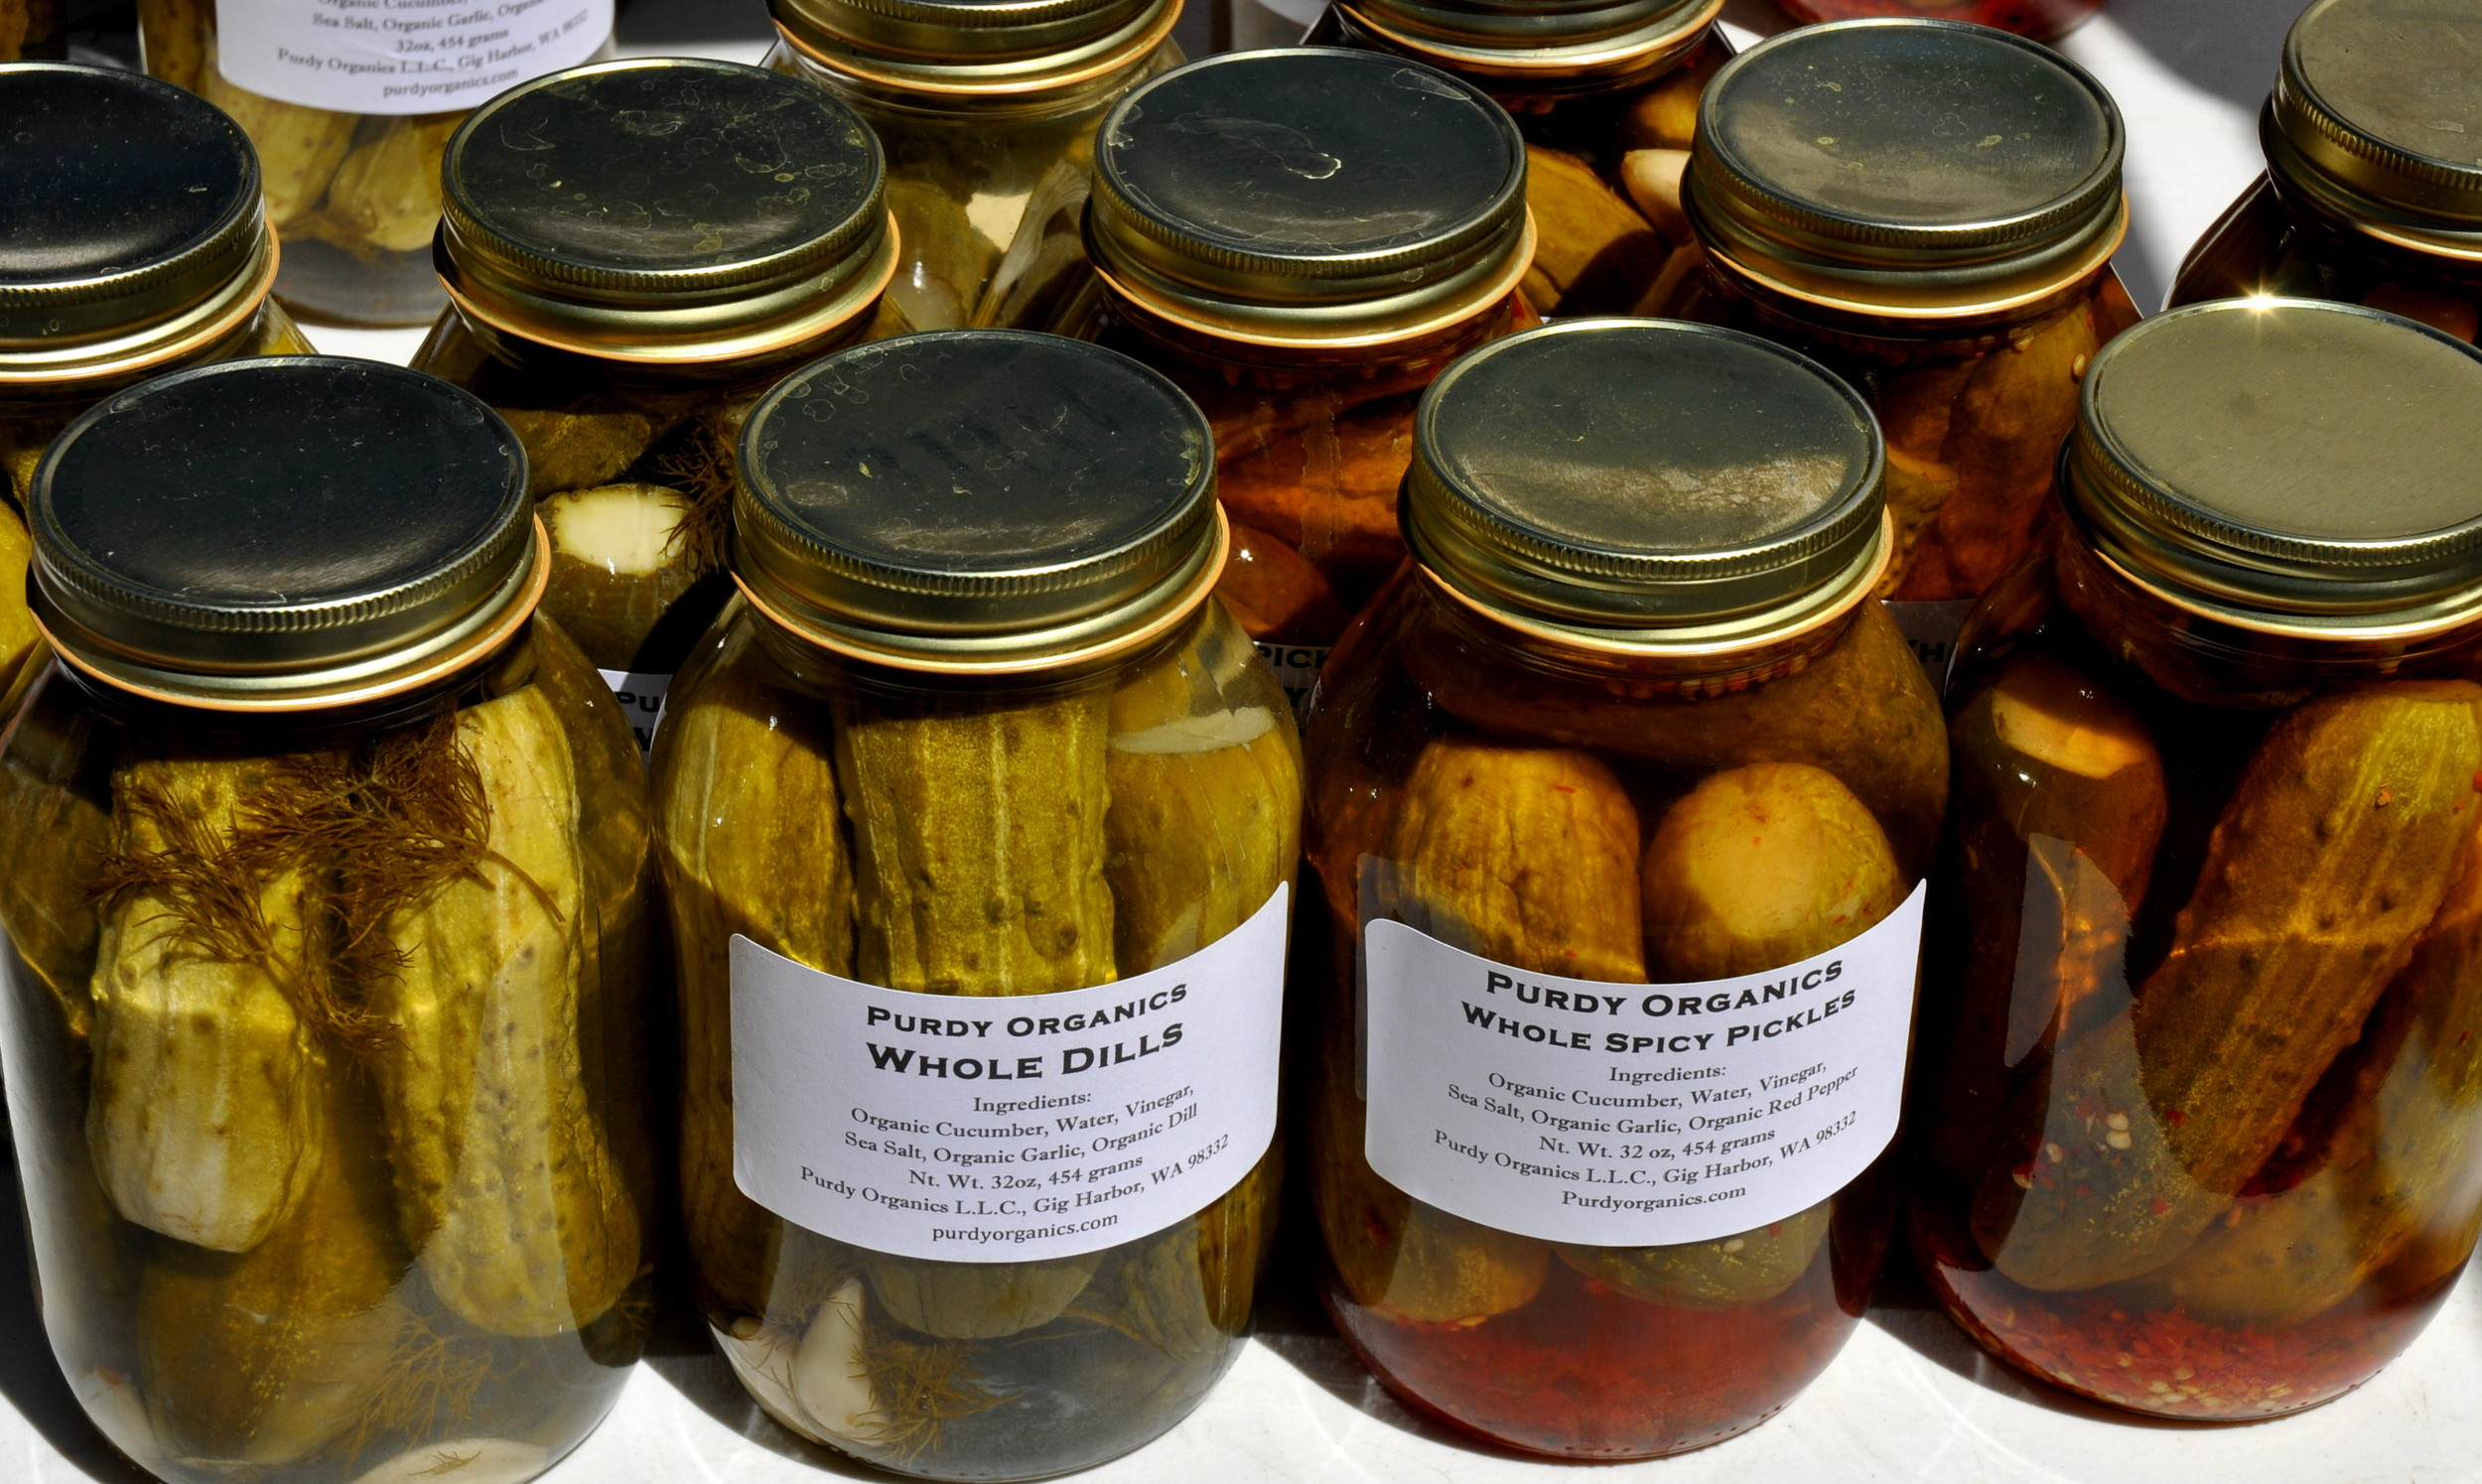 Pickles from Purdy Pickle. Photo copyright 2013 by Zachary D. Lyons.